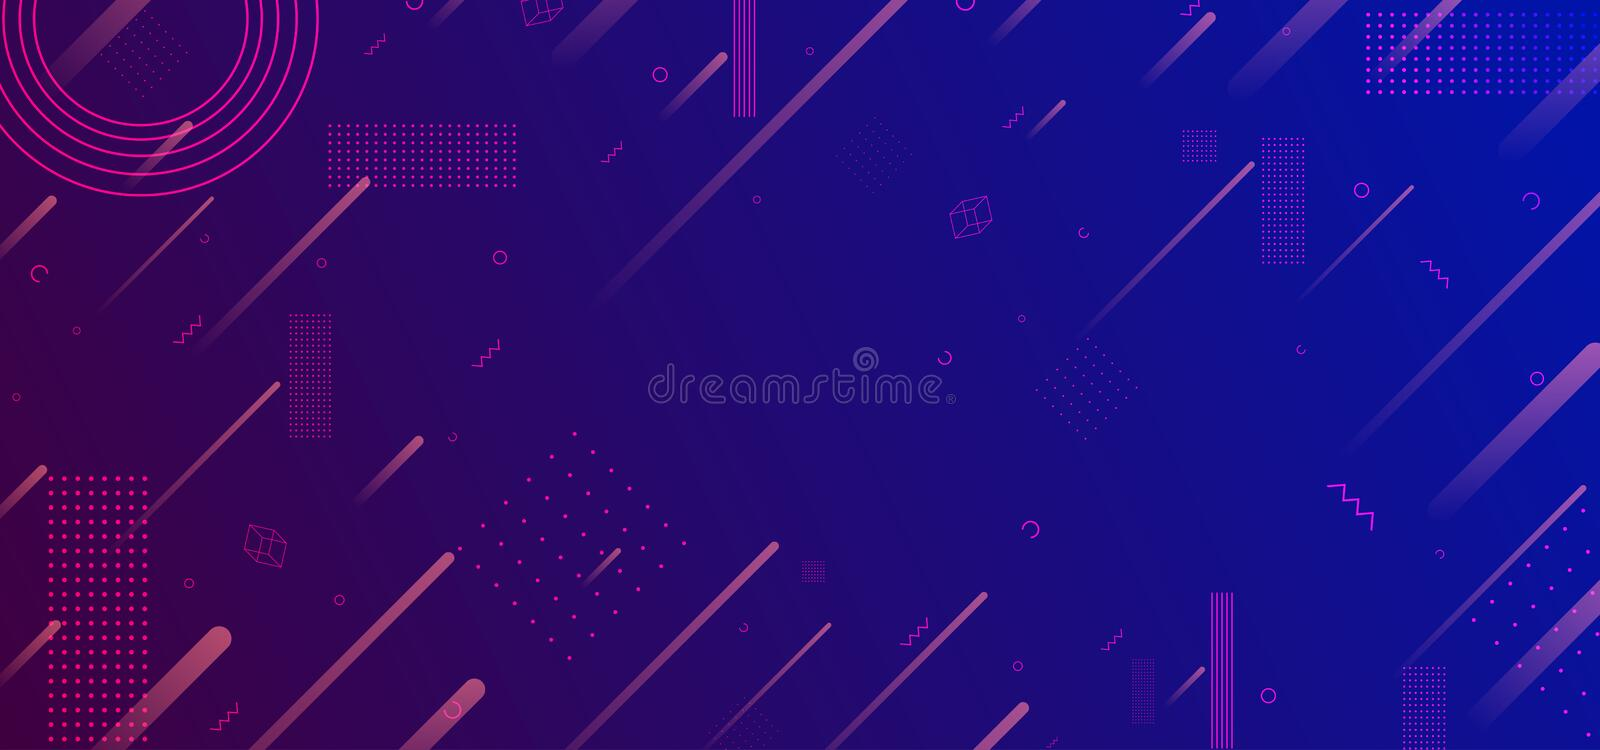 Neon glowing techno lines, blue hi-tech futuristic abstract background template, vector illustration design vector illustration